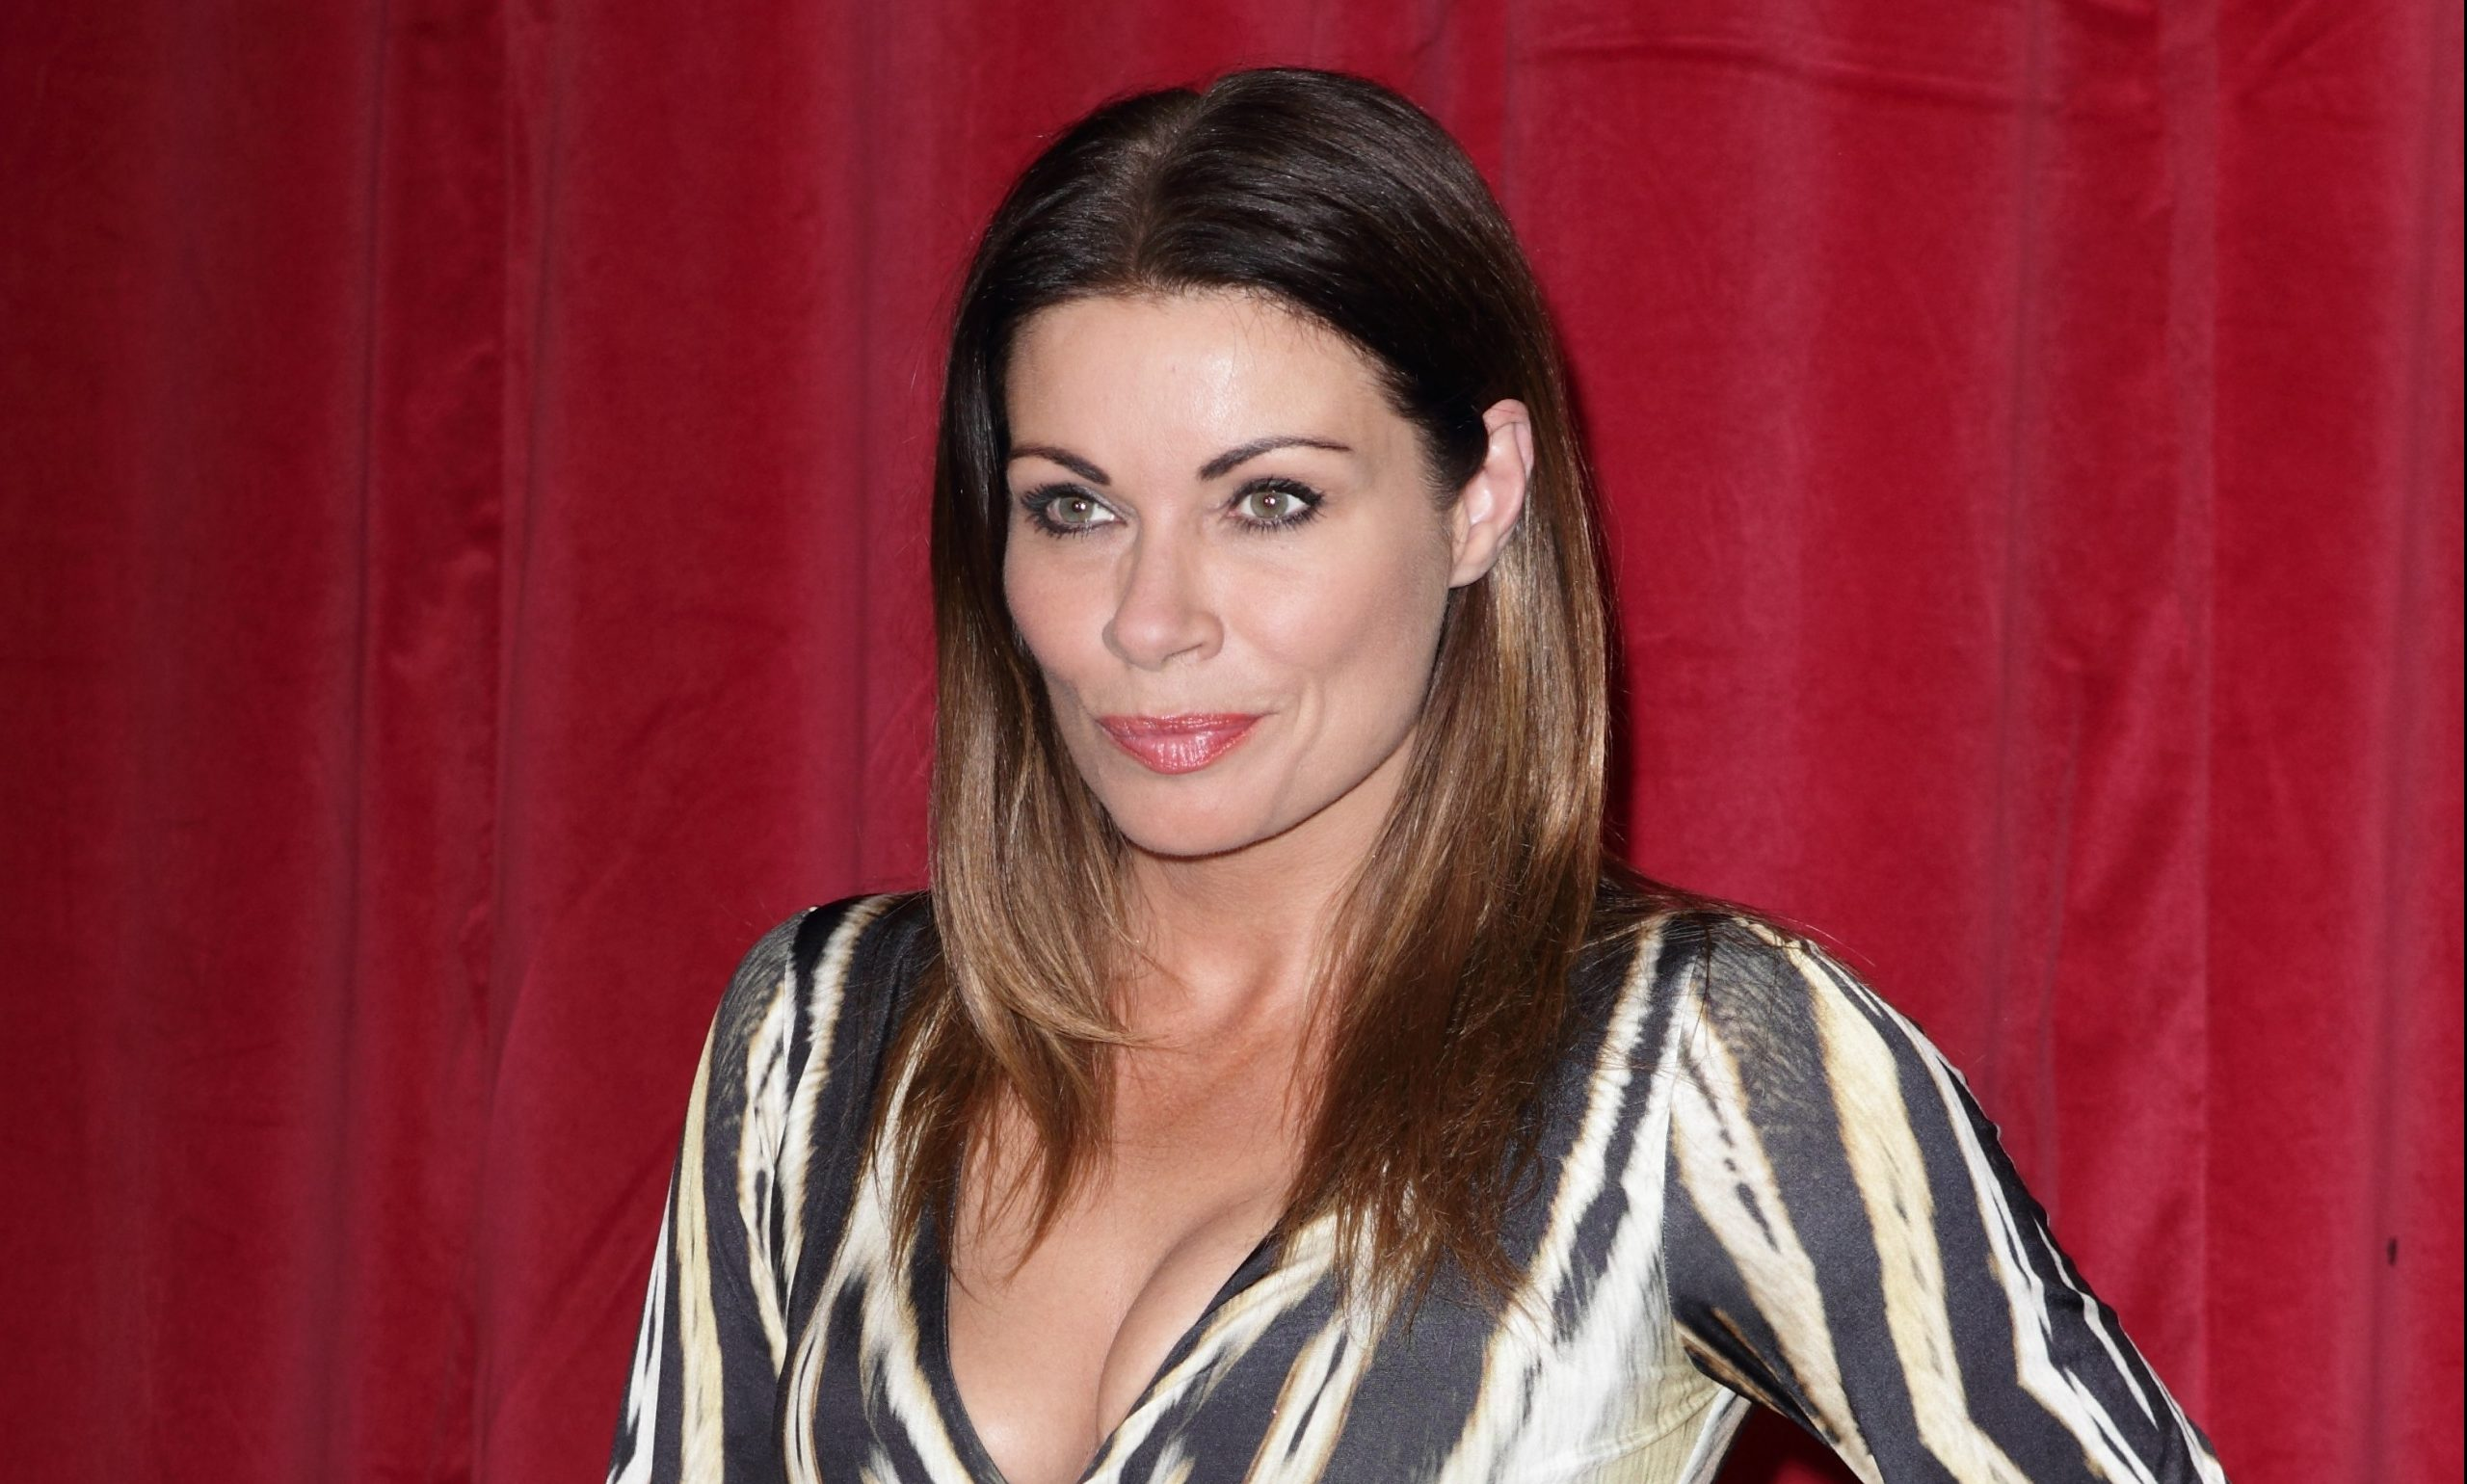 10 facts about Alison King - the actress who plays Coronation Street's Carla Connor